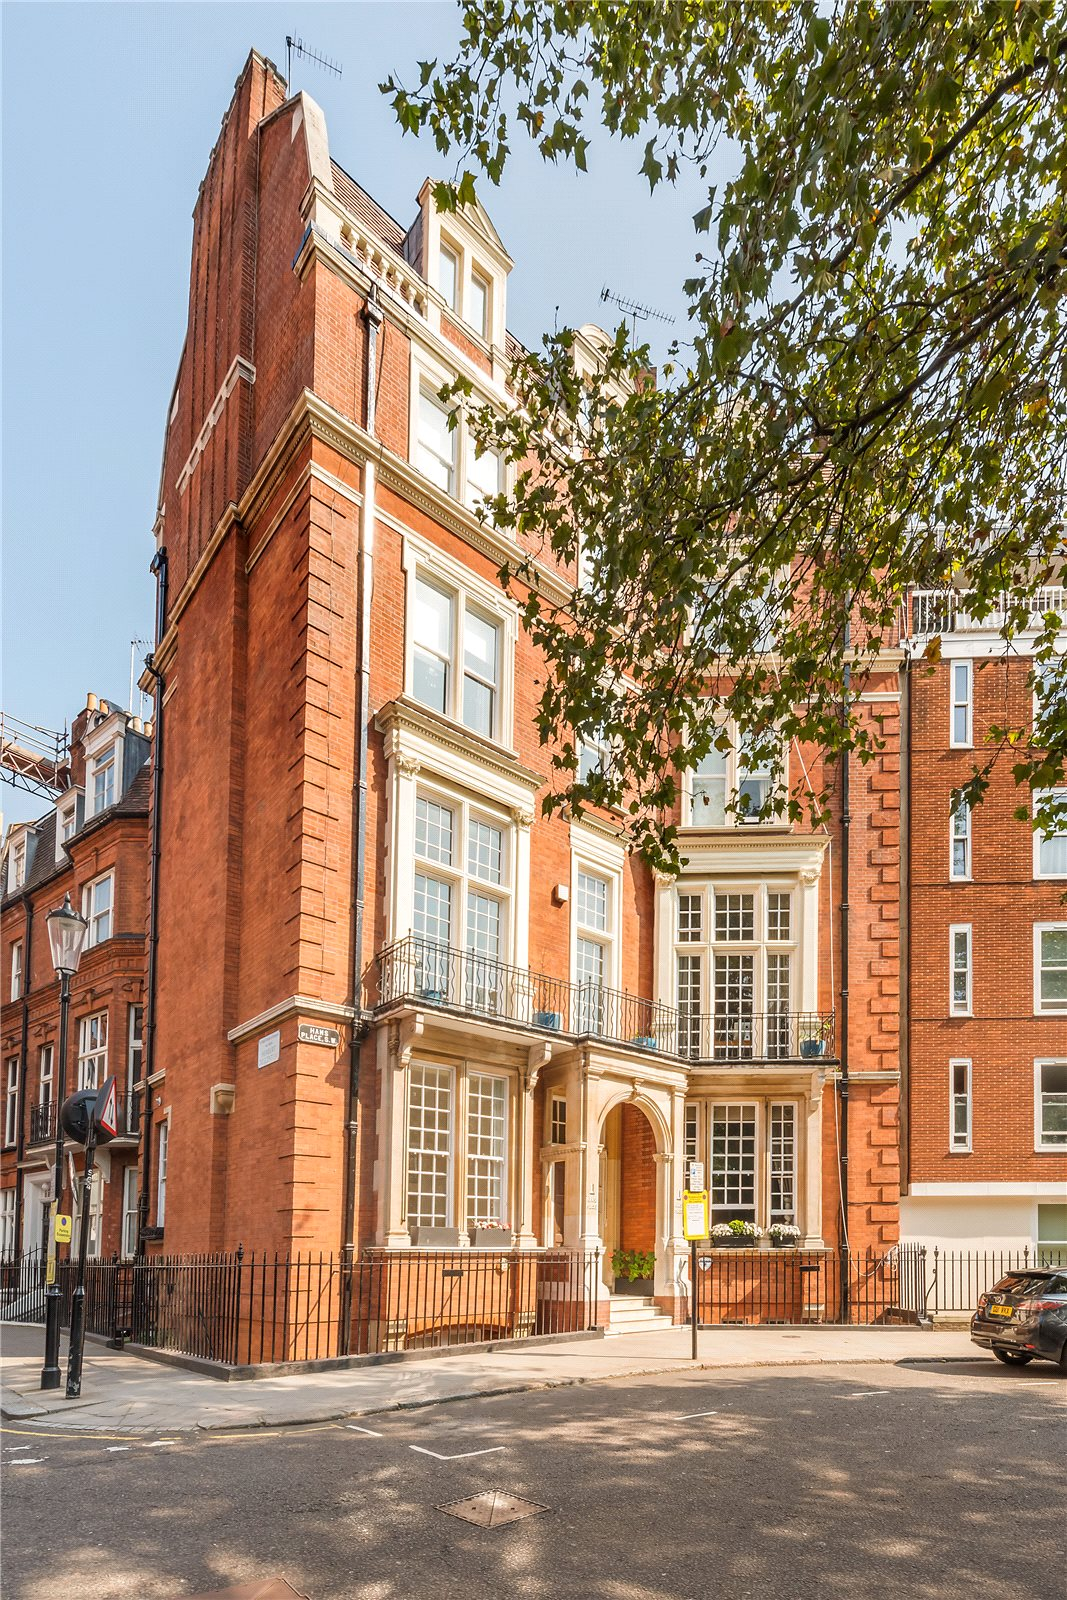 Additional photo for property listing at Hans Place, London, SW1X London, イギリス